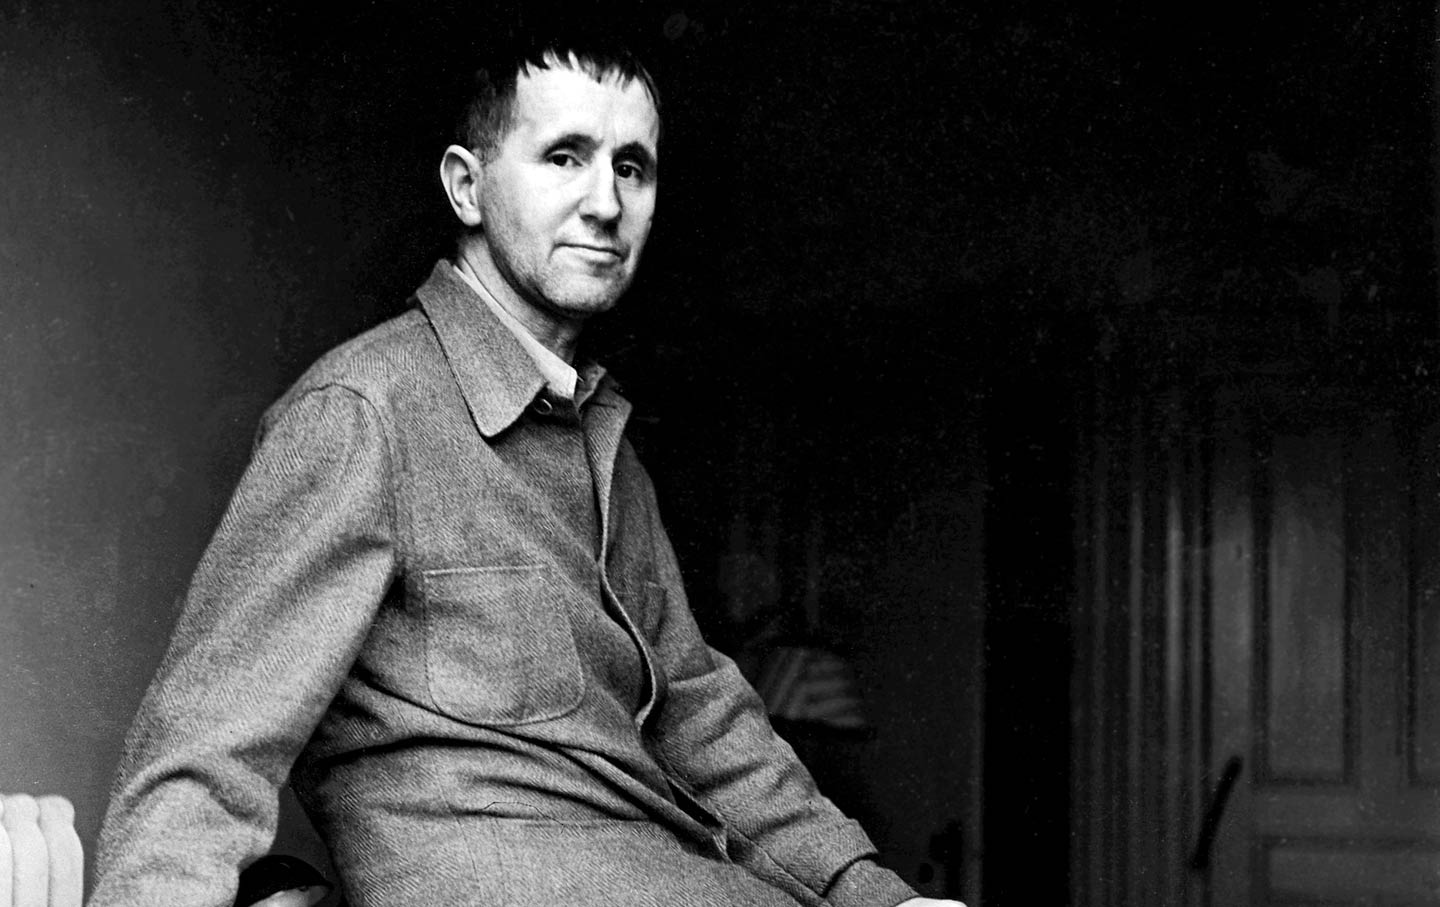 bertolt brecht Bertolt brecht was one of the most influential playwrights of the 20th century his works include the threepenny opera (1928) with composer kurt weill, mother courage and her children (1941), the good person of szechwan (1943), and the resistible rise of.